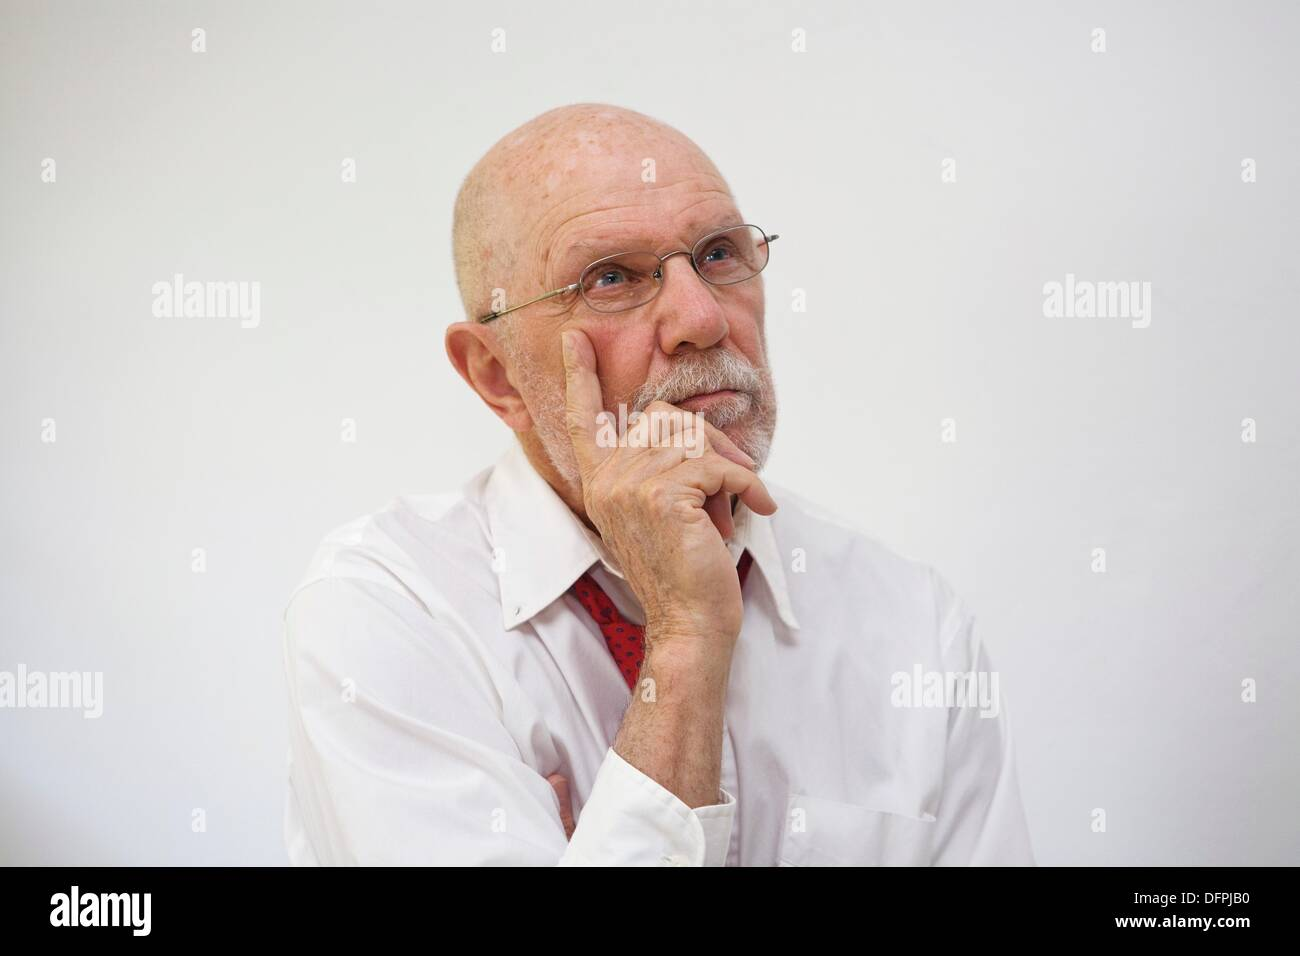 Man lost in his thoughts - Stock Image